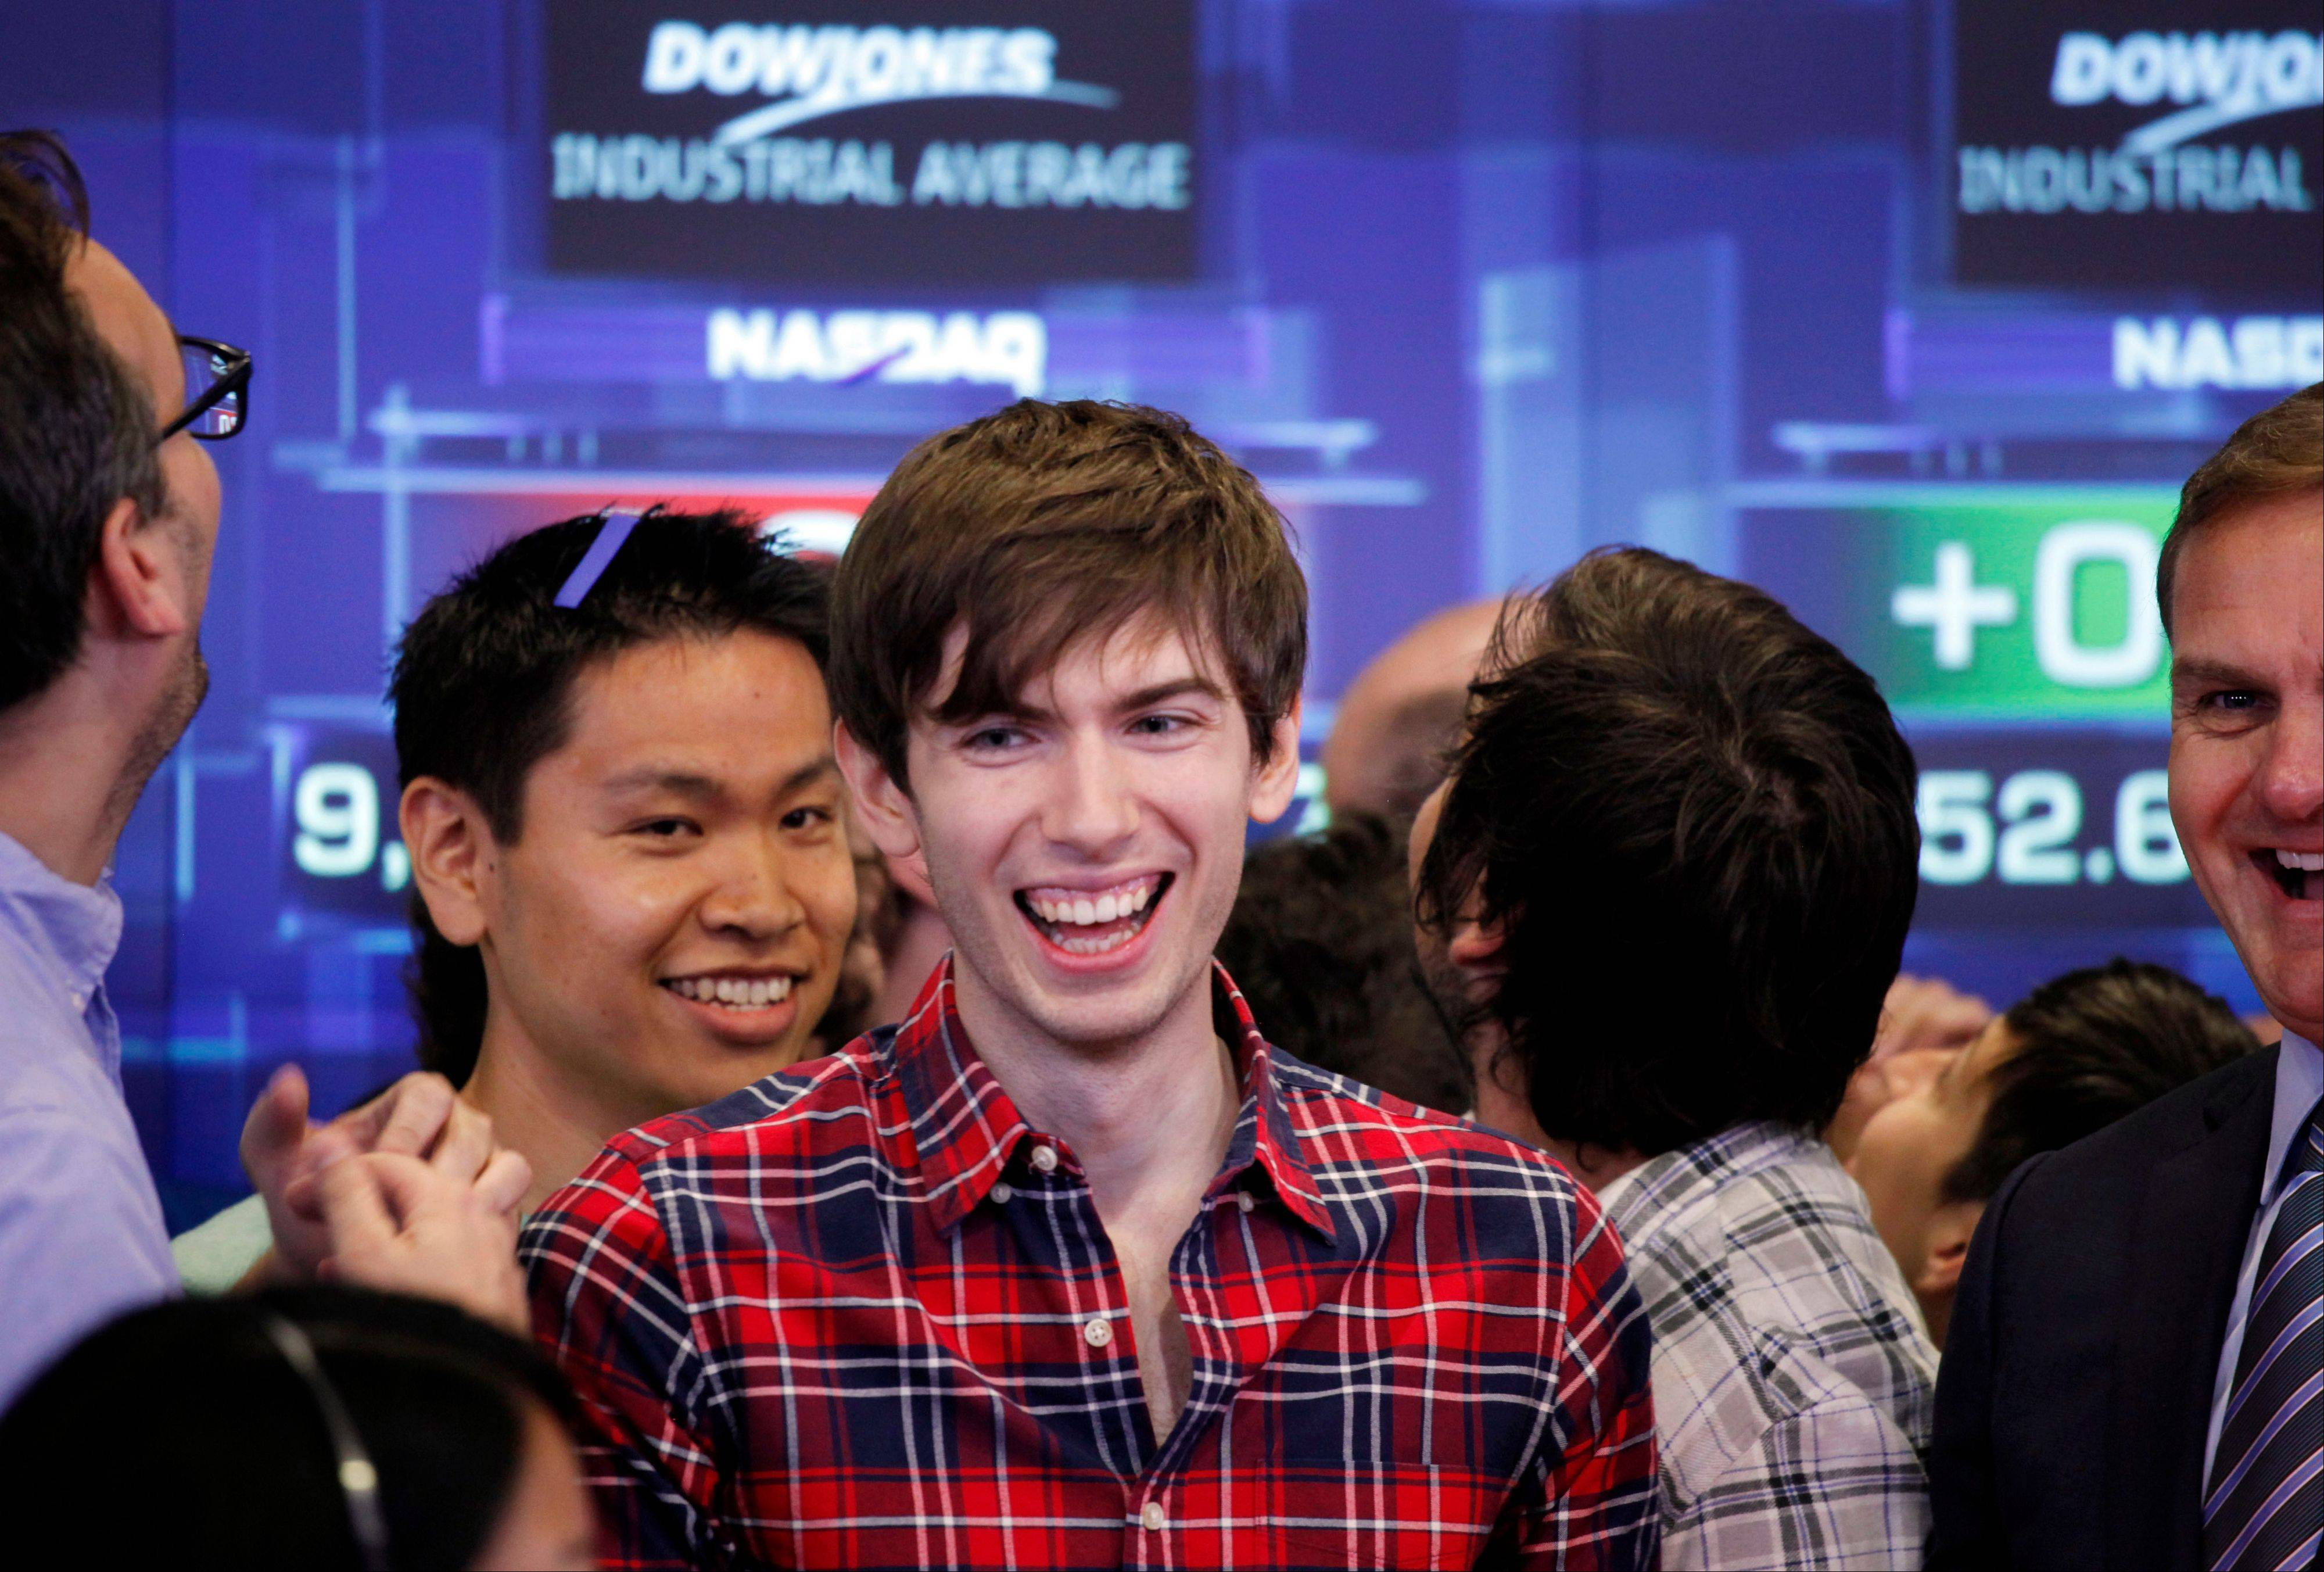 David Karp, center, founder and CEO of Tumblr, reacts during the opening bell at Nasdaq Thursday in New York. Yahoo acquired the online blogging forum for $1.1 billion in June. Tumblr will remain independently operated and Karp will stay CEO.